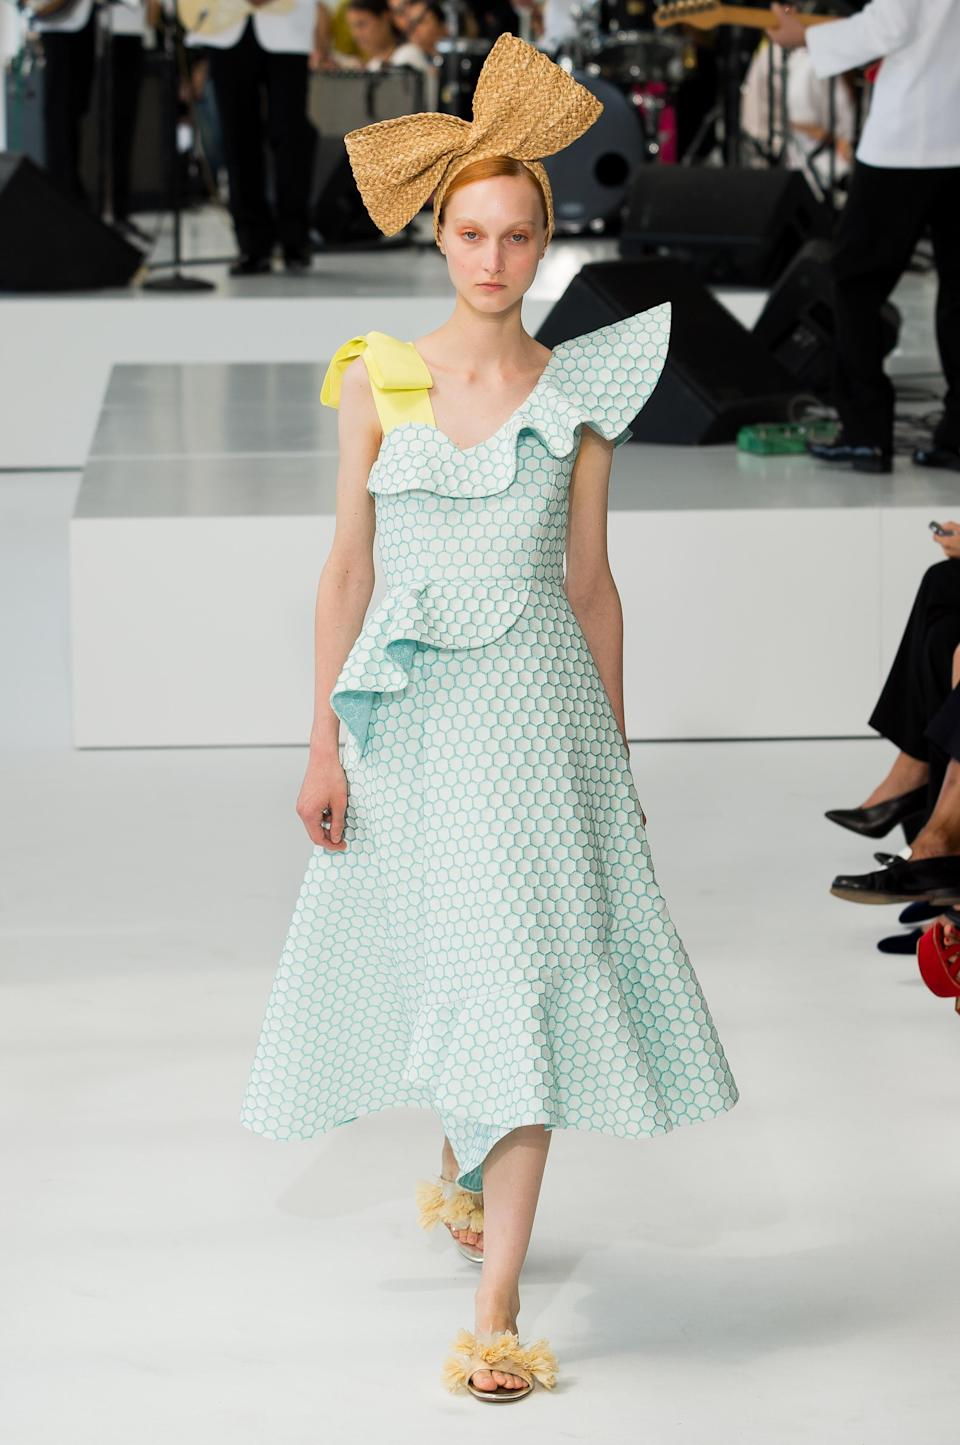 <p><i>Model wears a yellow-and-light-blue ruffled dress from the SS18 Delpozo collection. (Photo: IMAXtree) </i></p>